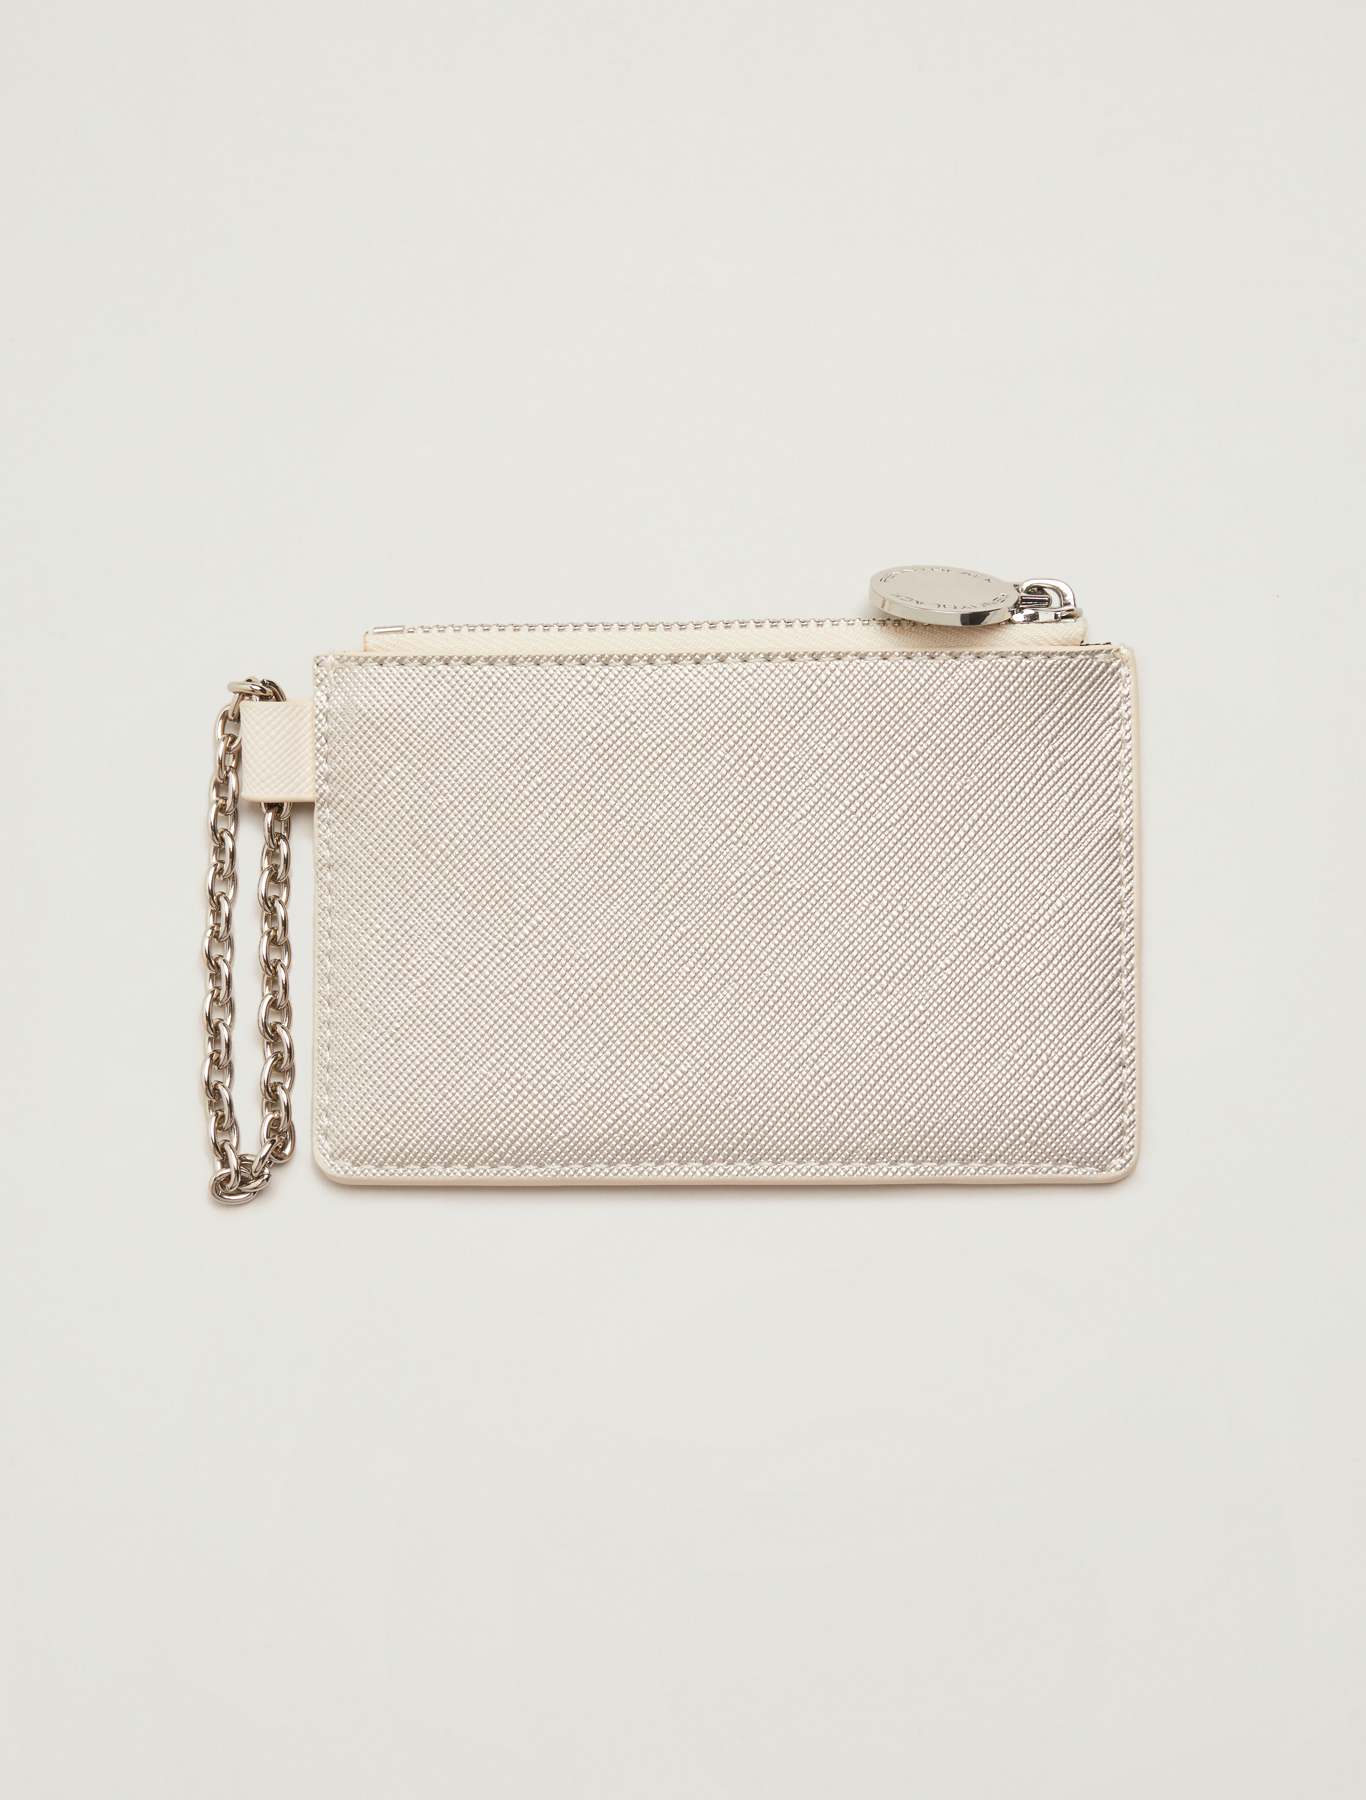 Key ring with card holder - ivory - pennyblack